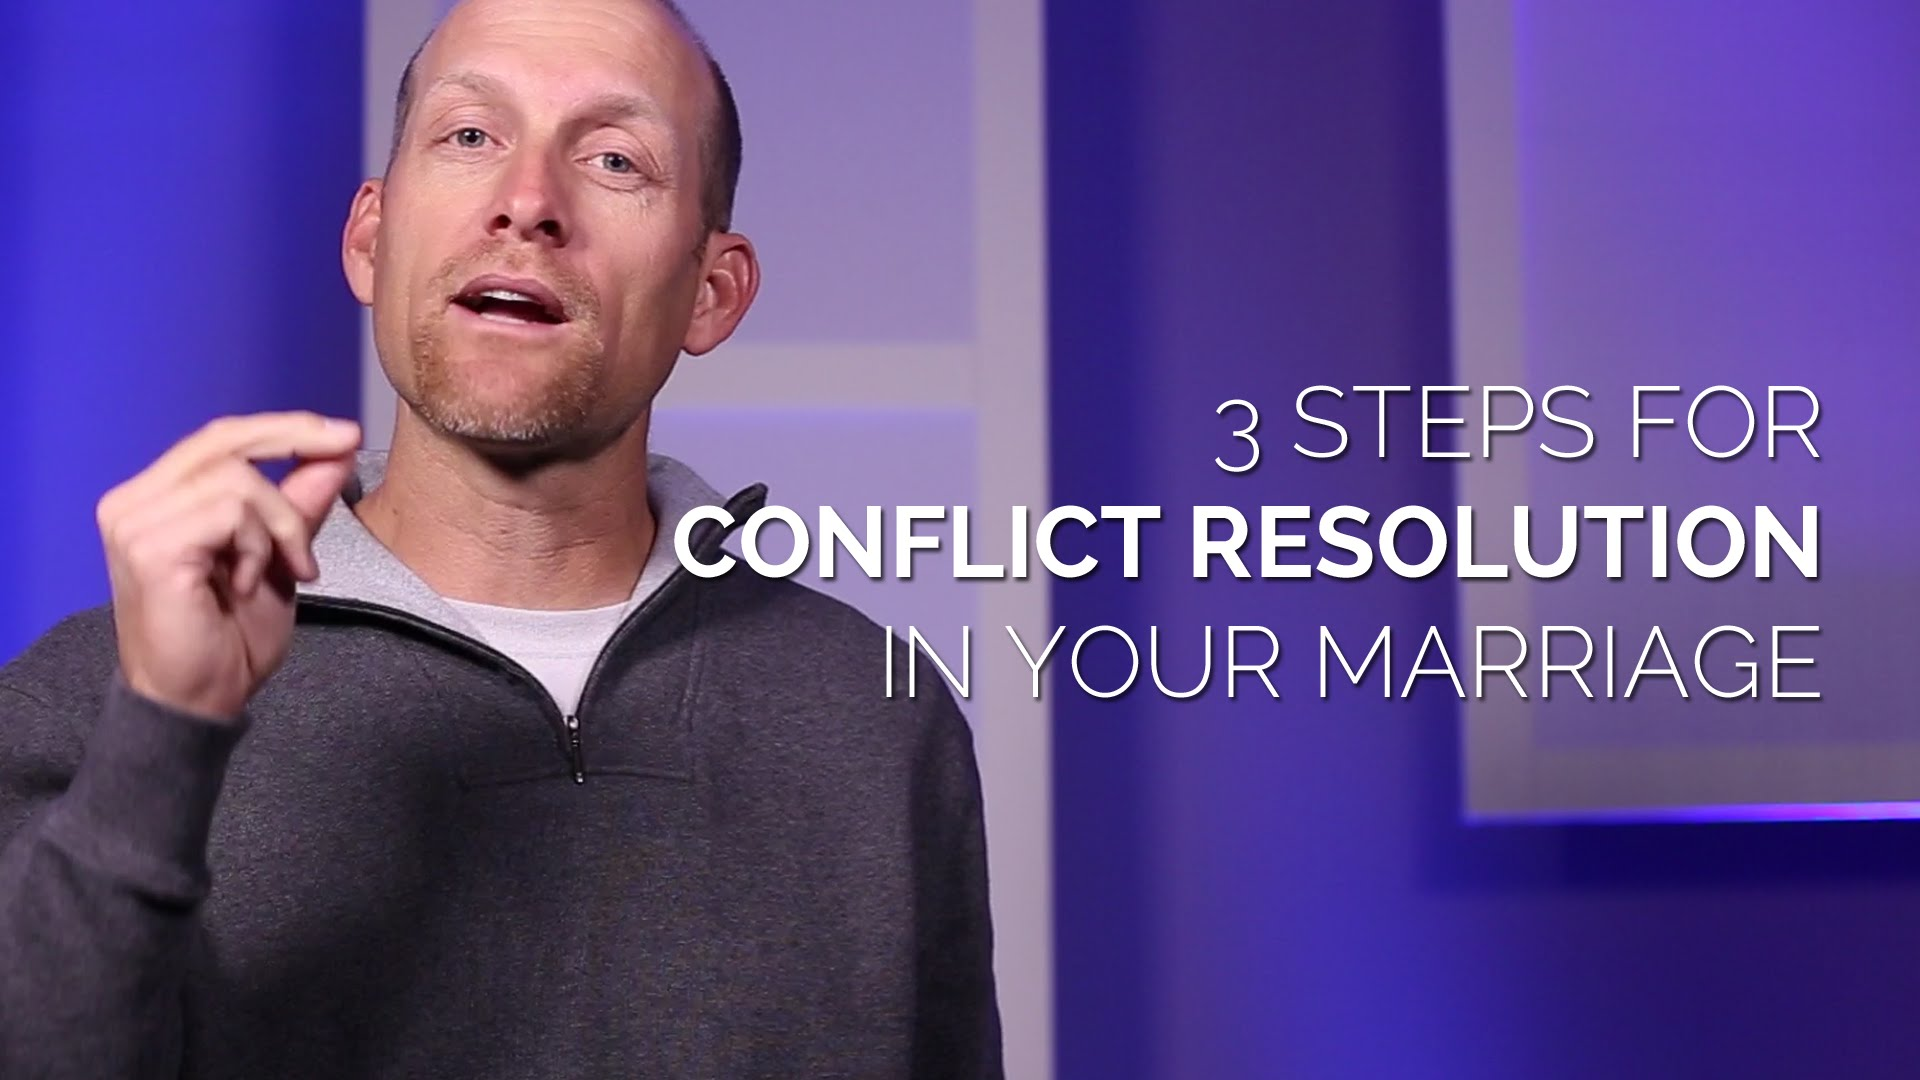 3 Steps for Conflict Resolution in Marriage